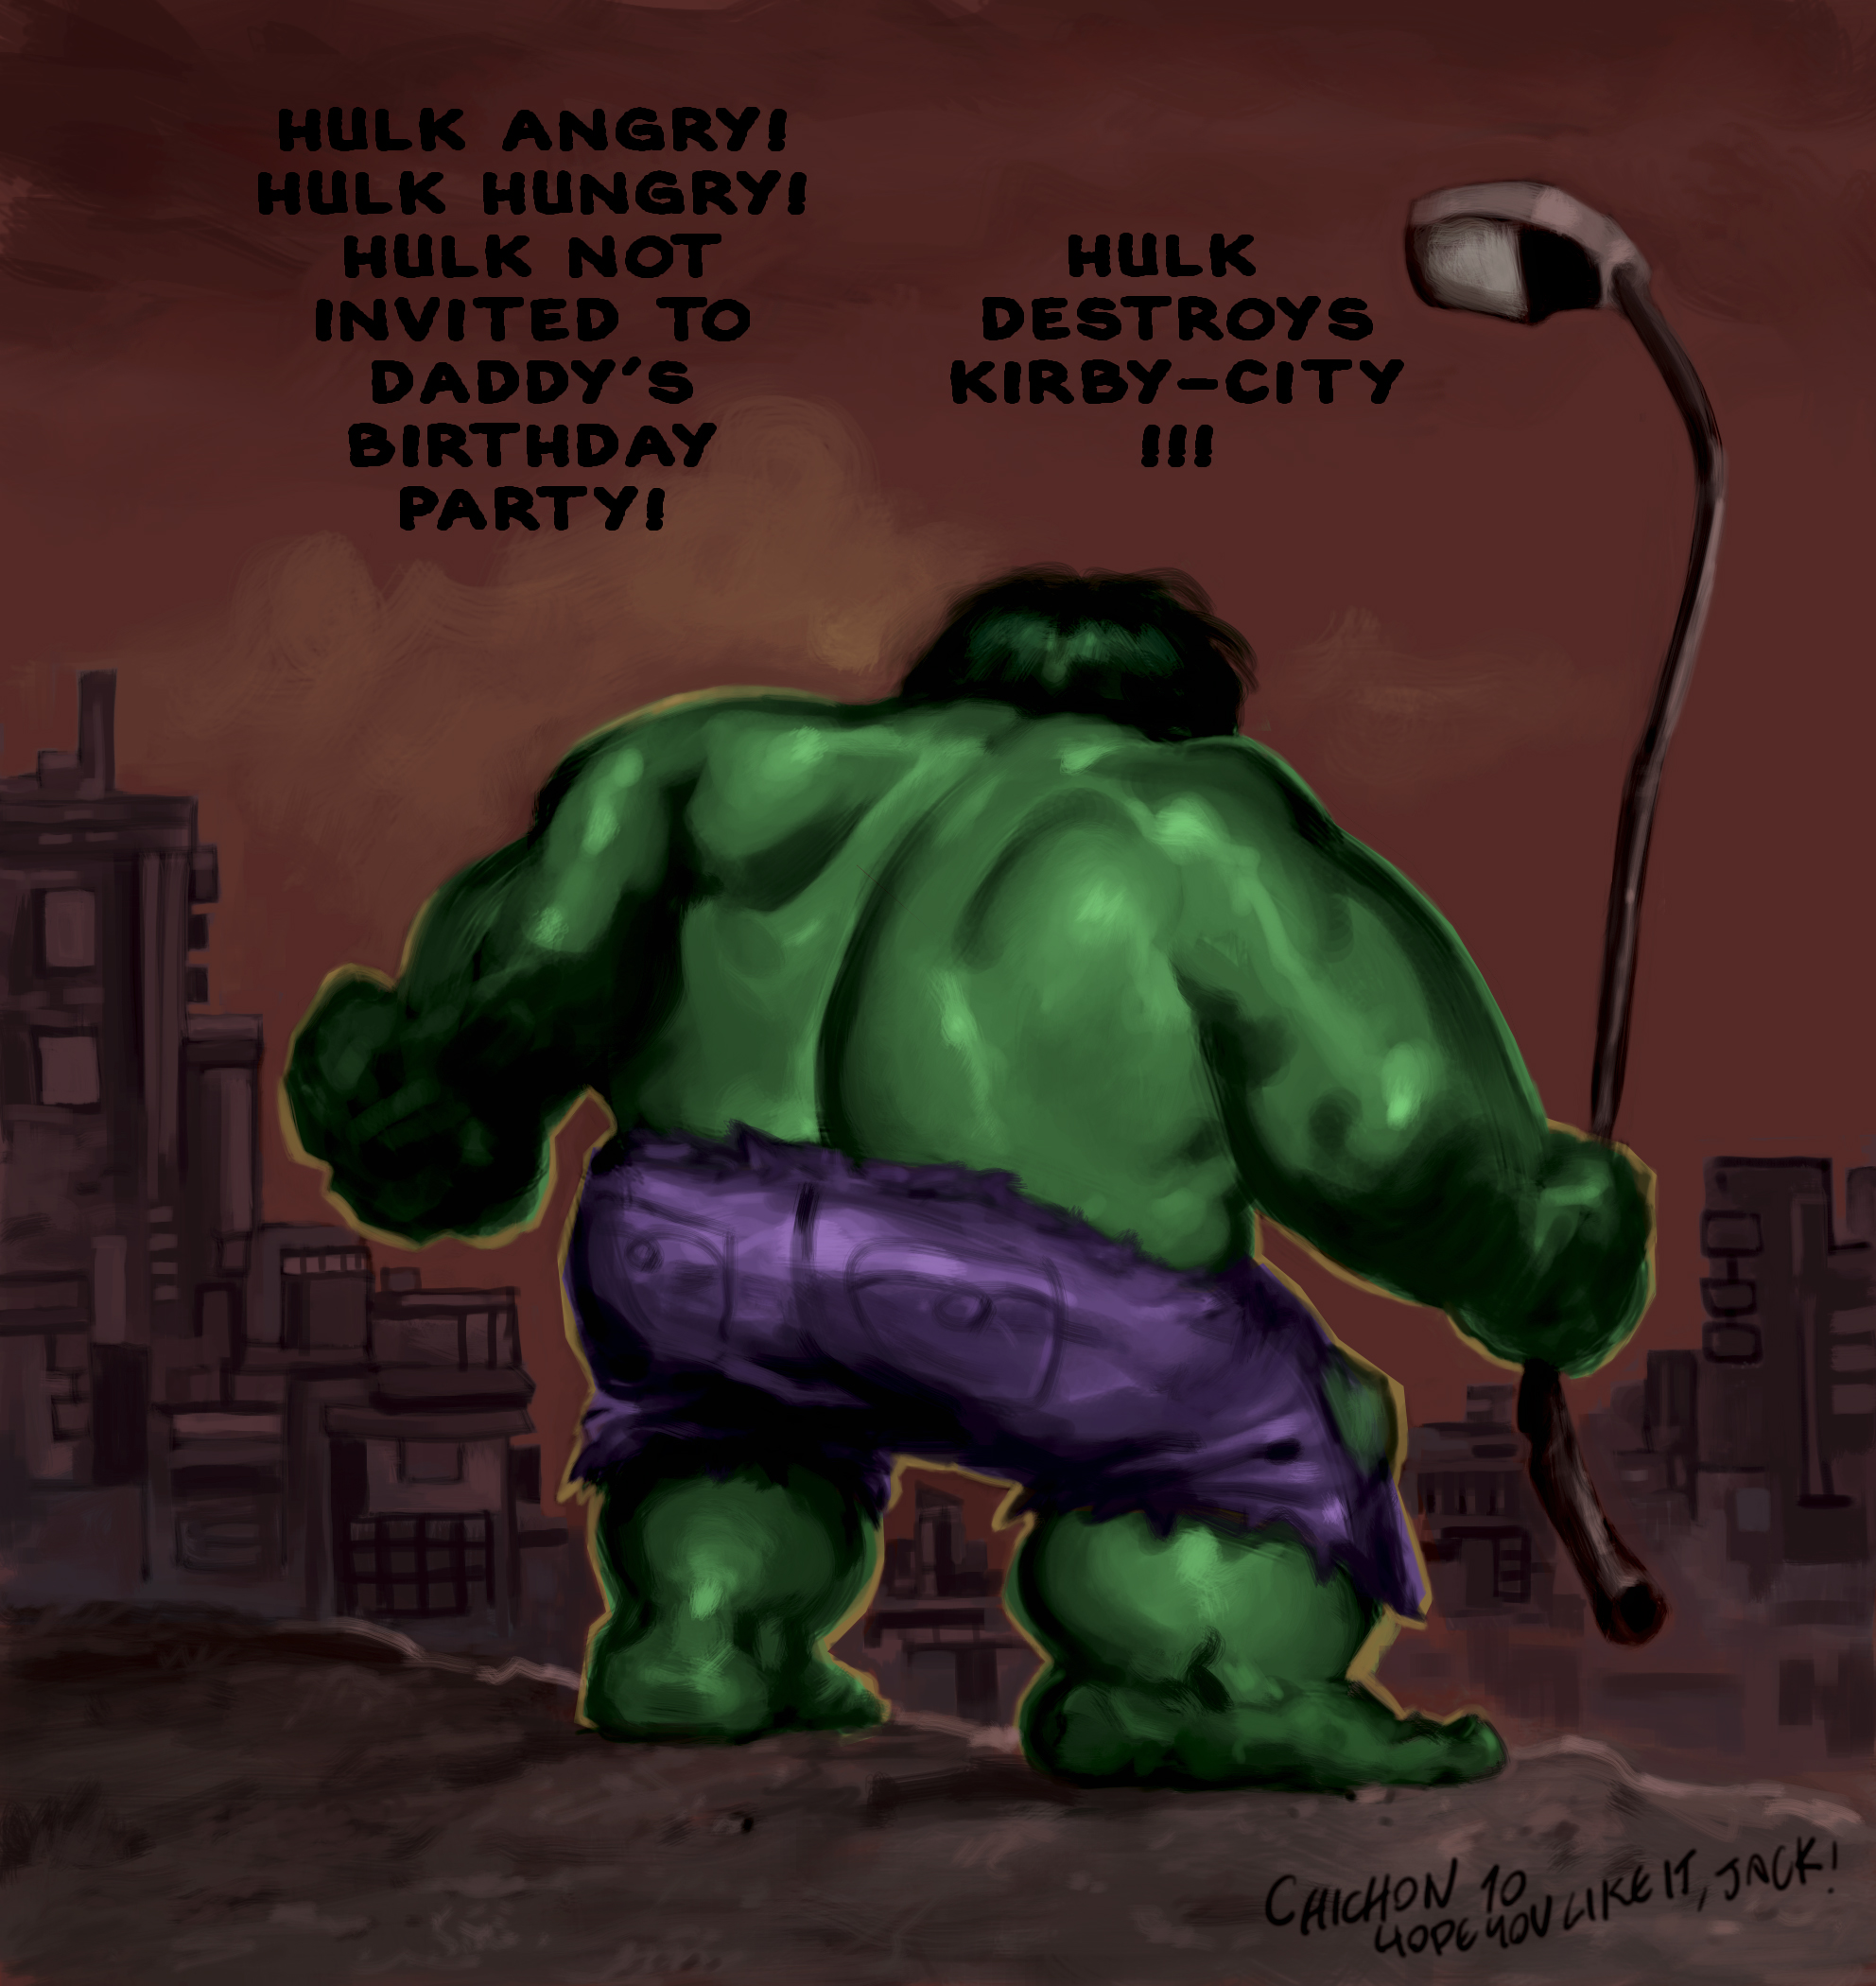 HULK NOT INVITED!